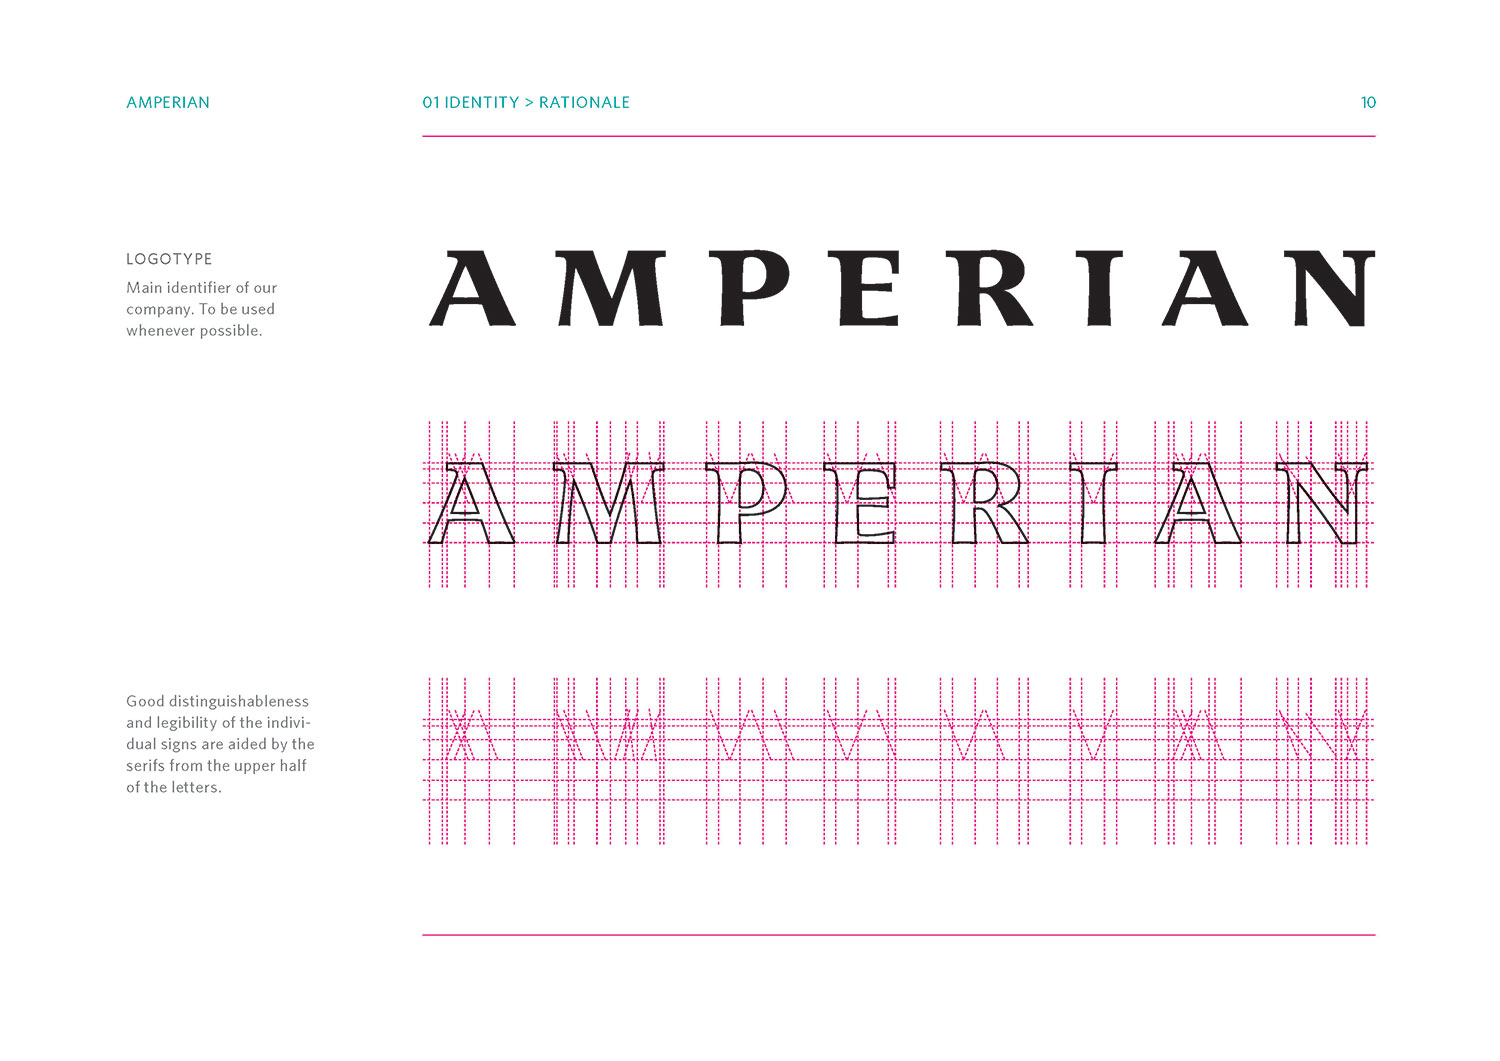 Amperian SG branding corporate identity design guide manual - Logo identity rationale.